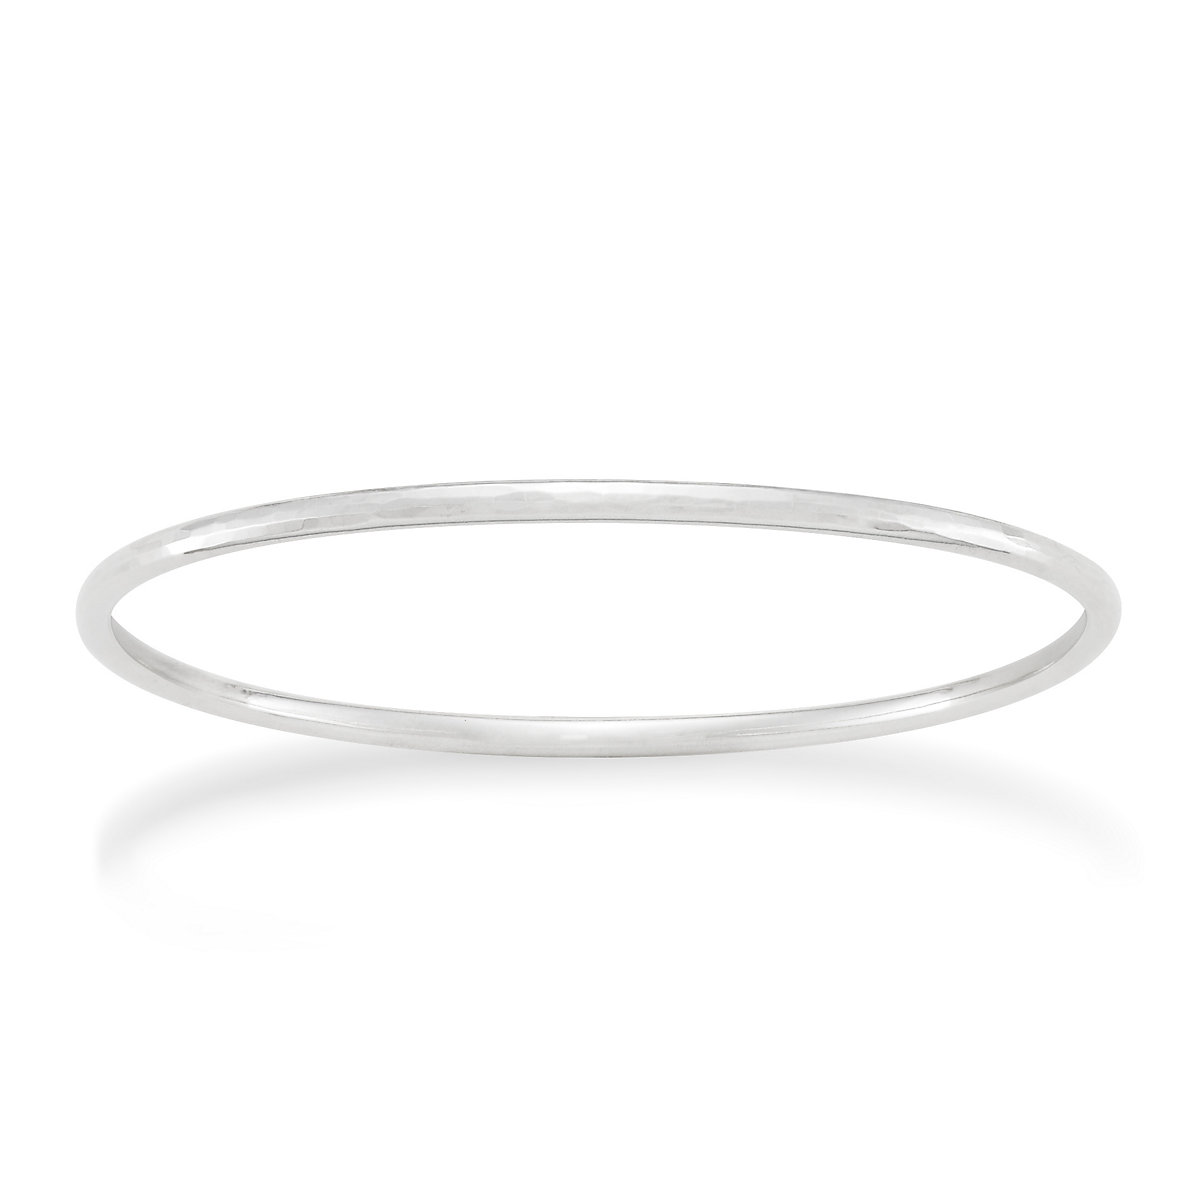 idiom is jewelry amazon kate bangle a bangles dp york bridesmaid engraved ca bracelet new womens what spade bridesmaids